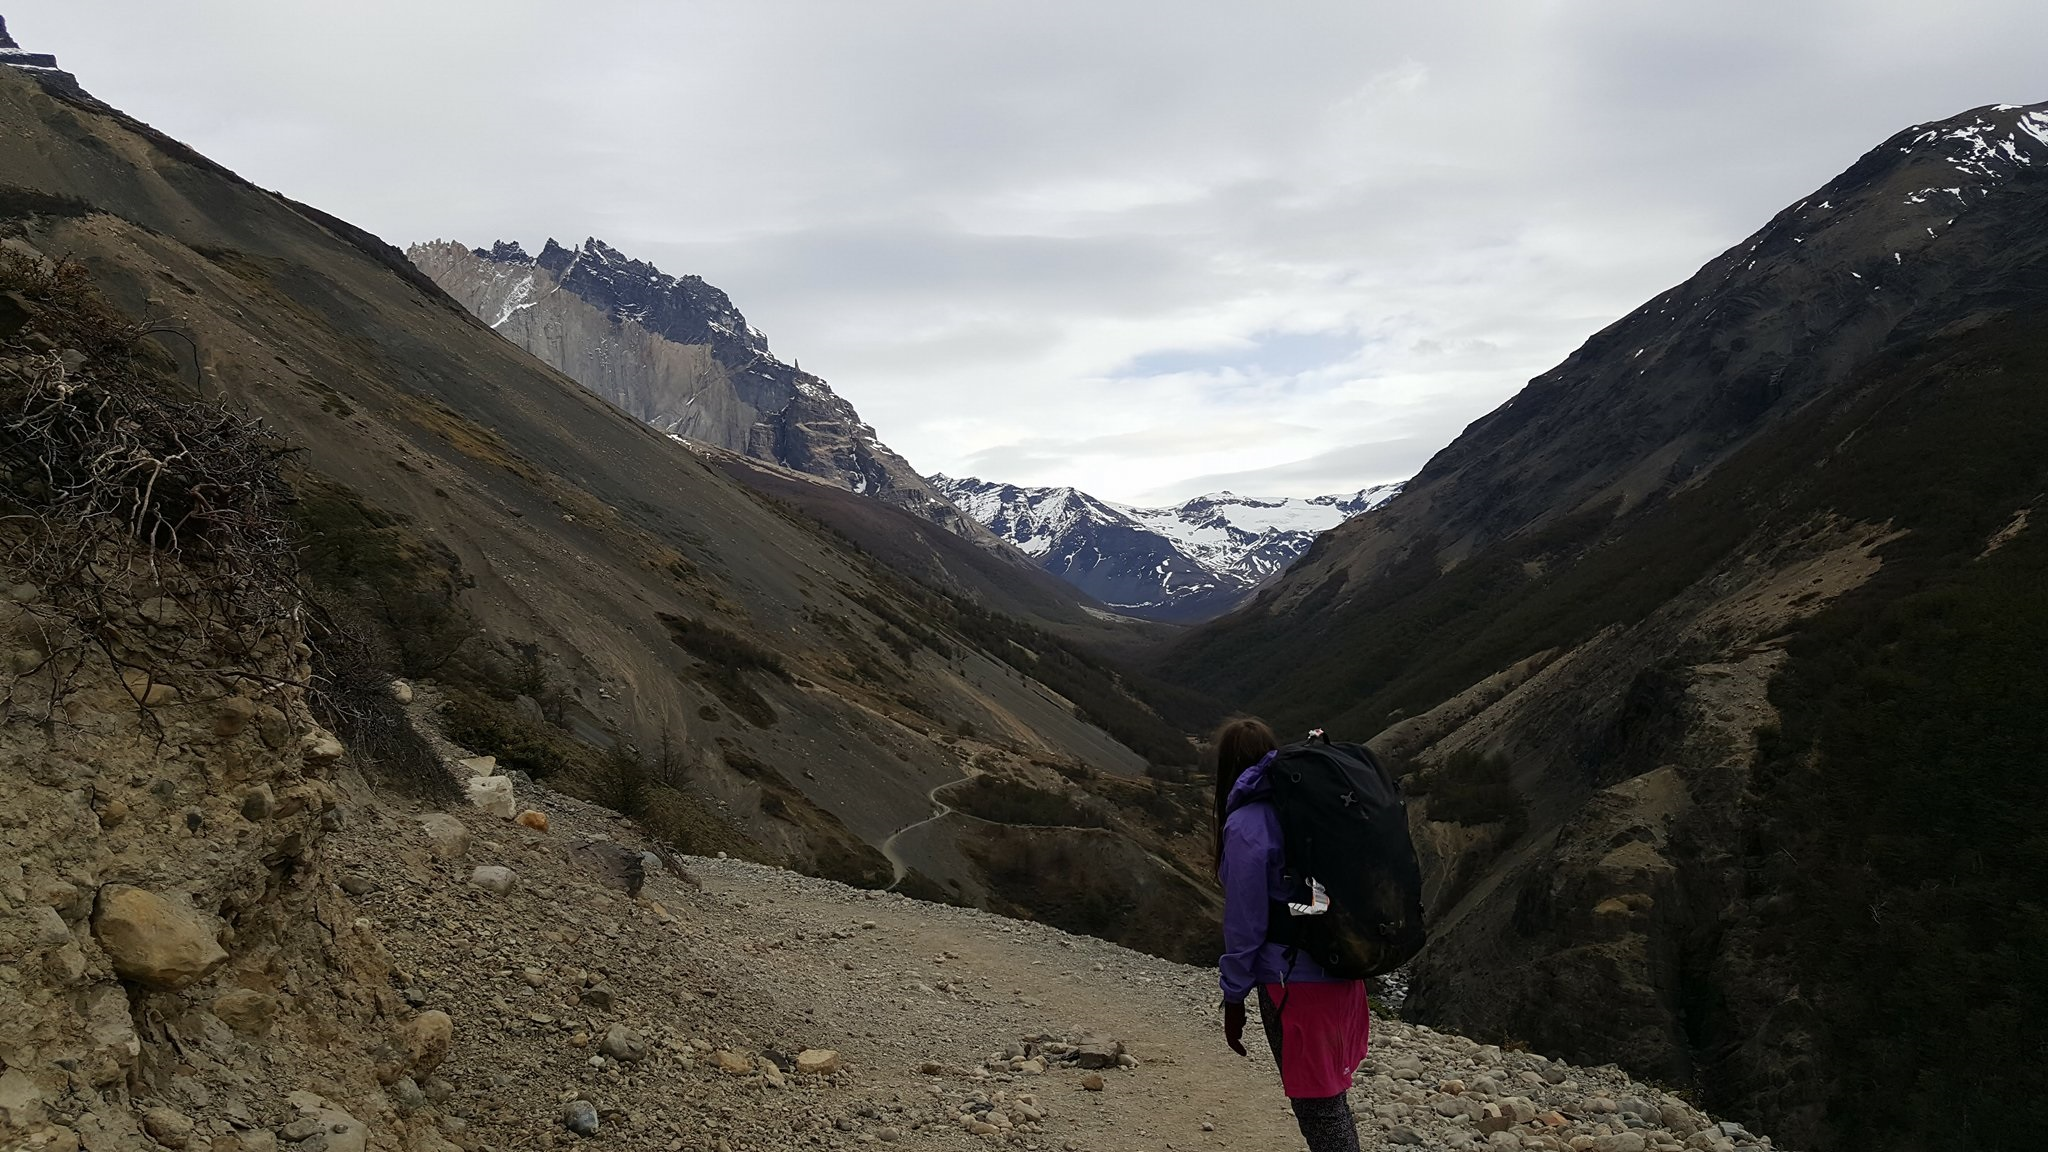 Trekking with diabetes at high altitude